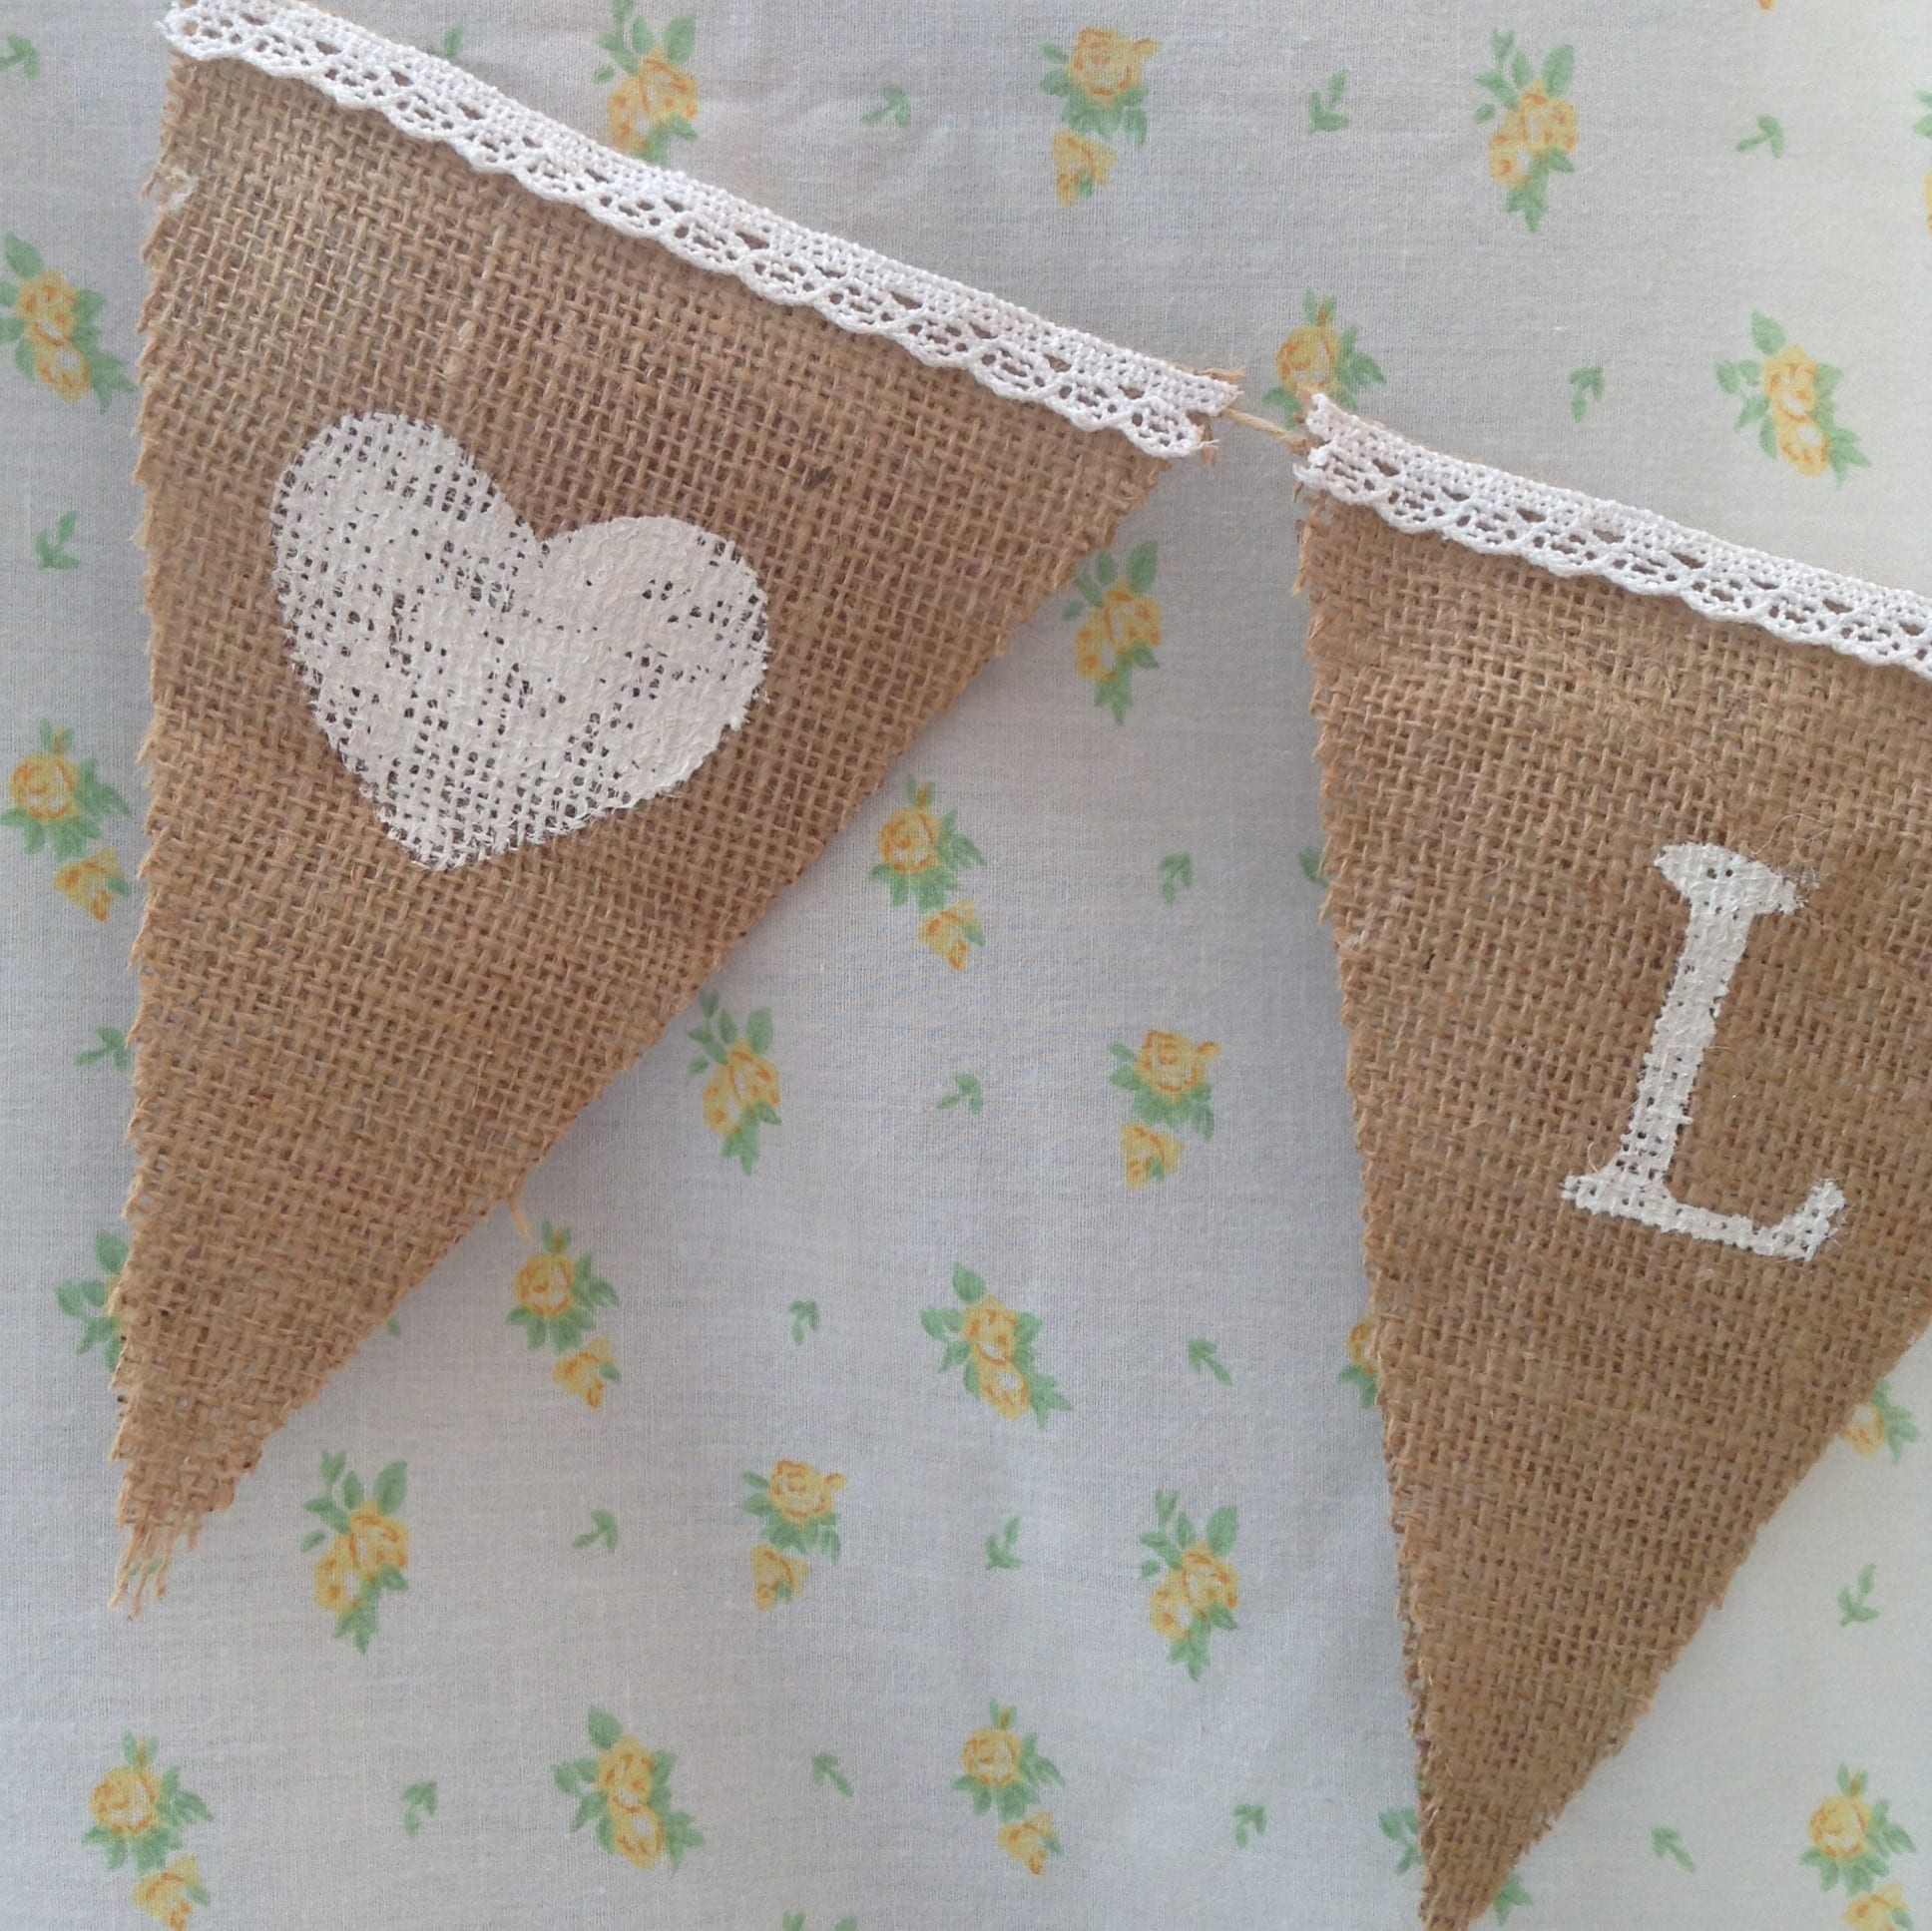 How to make no sew bunting in 7 easy steps